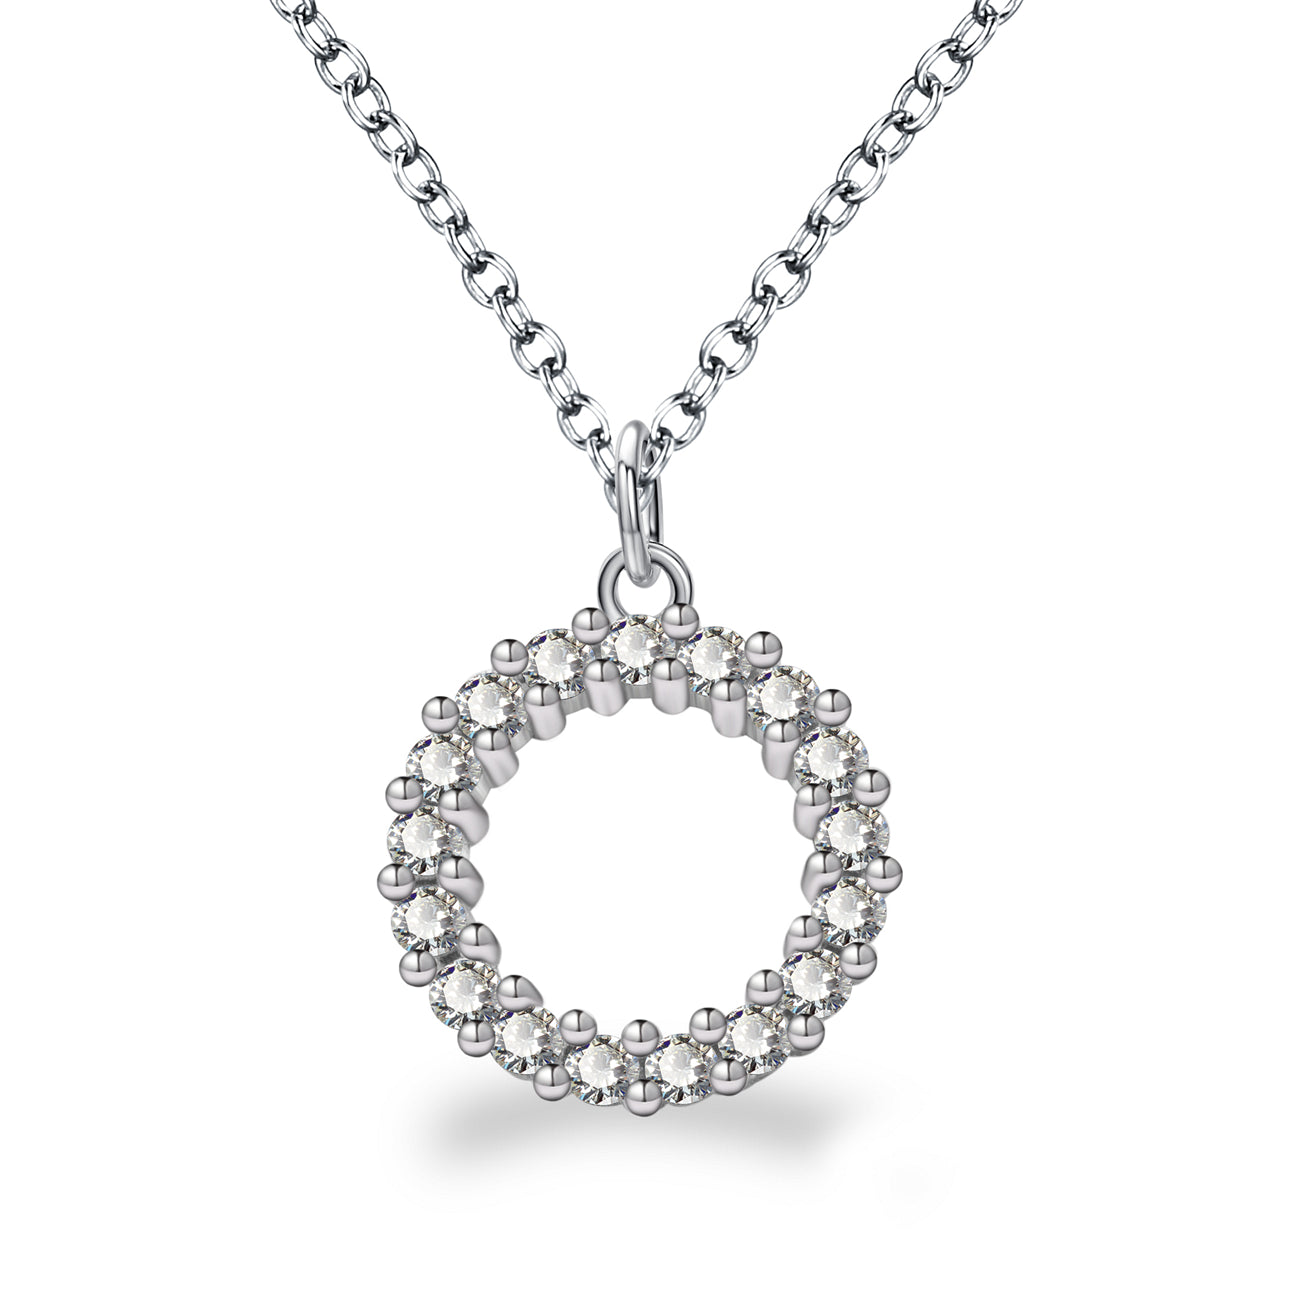 JENNY STERLING SILVER NECKLACE